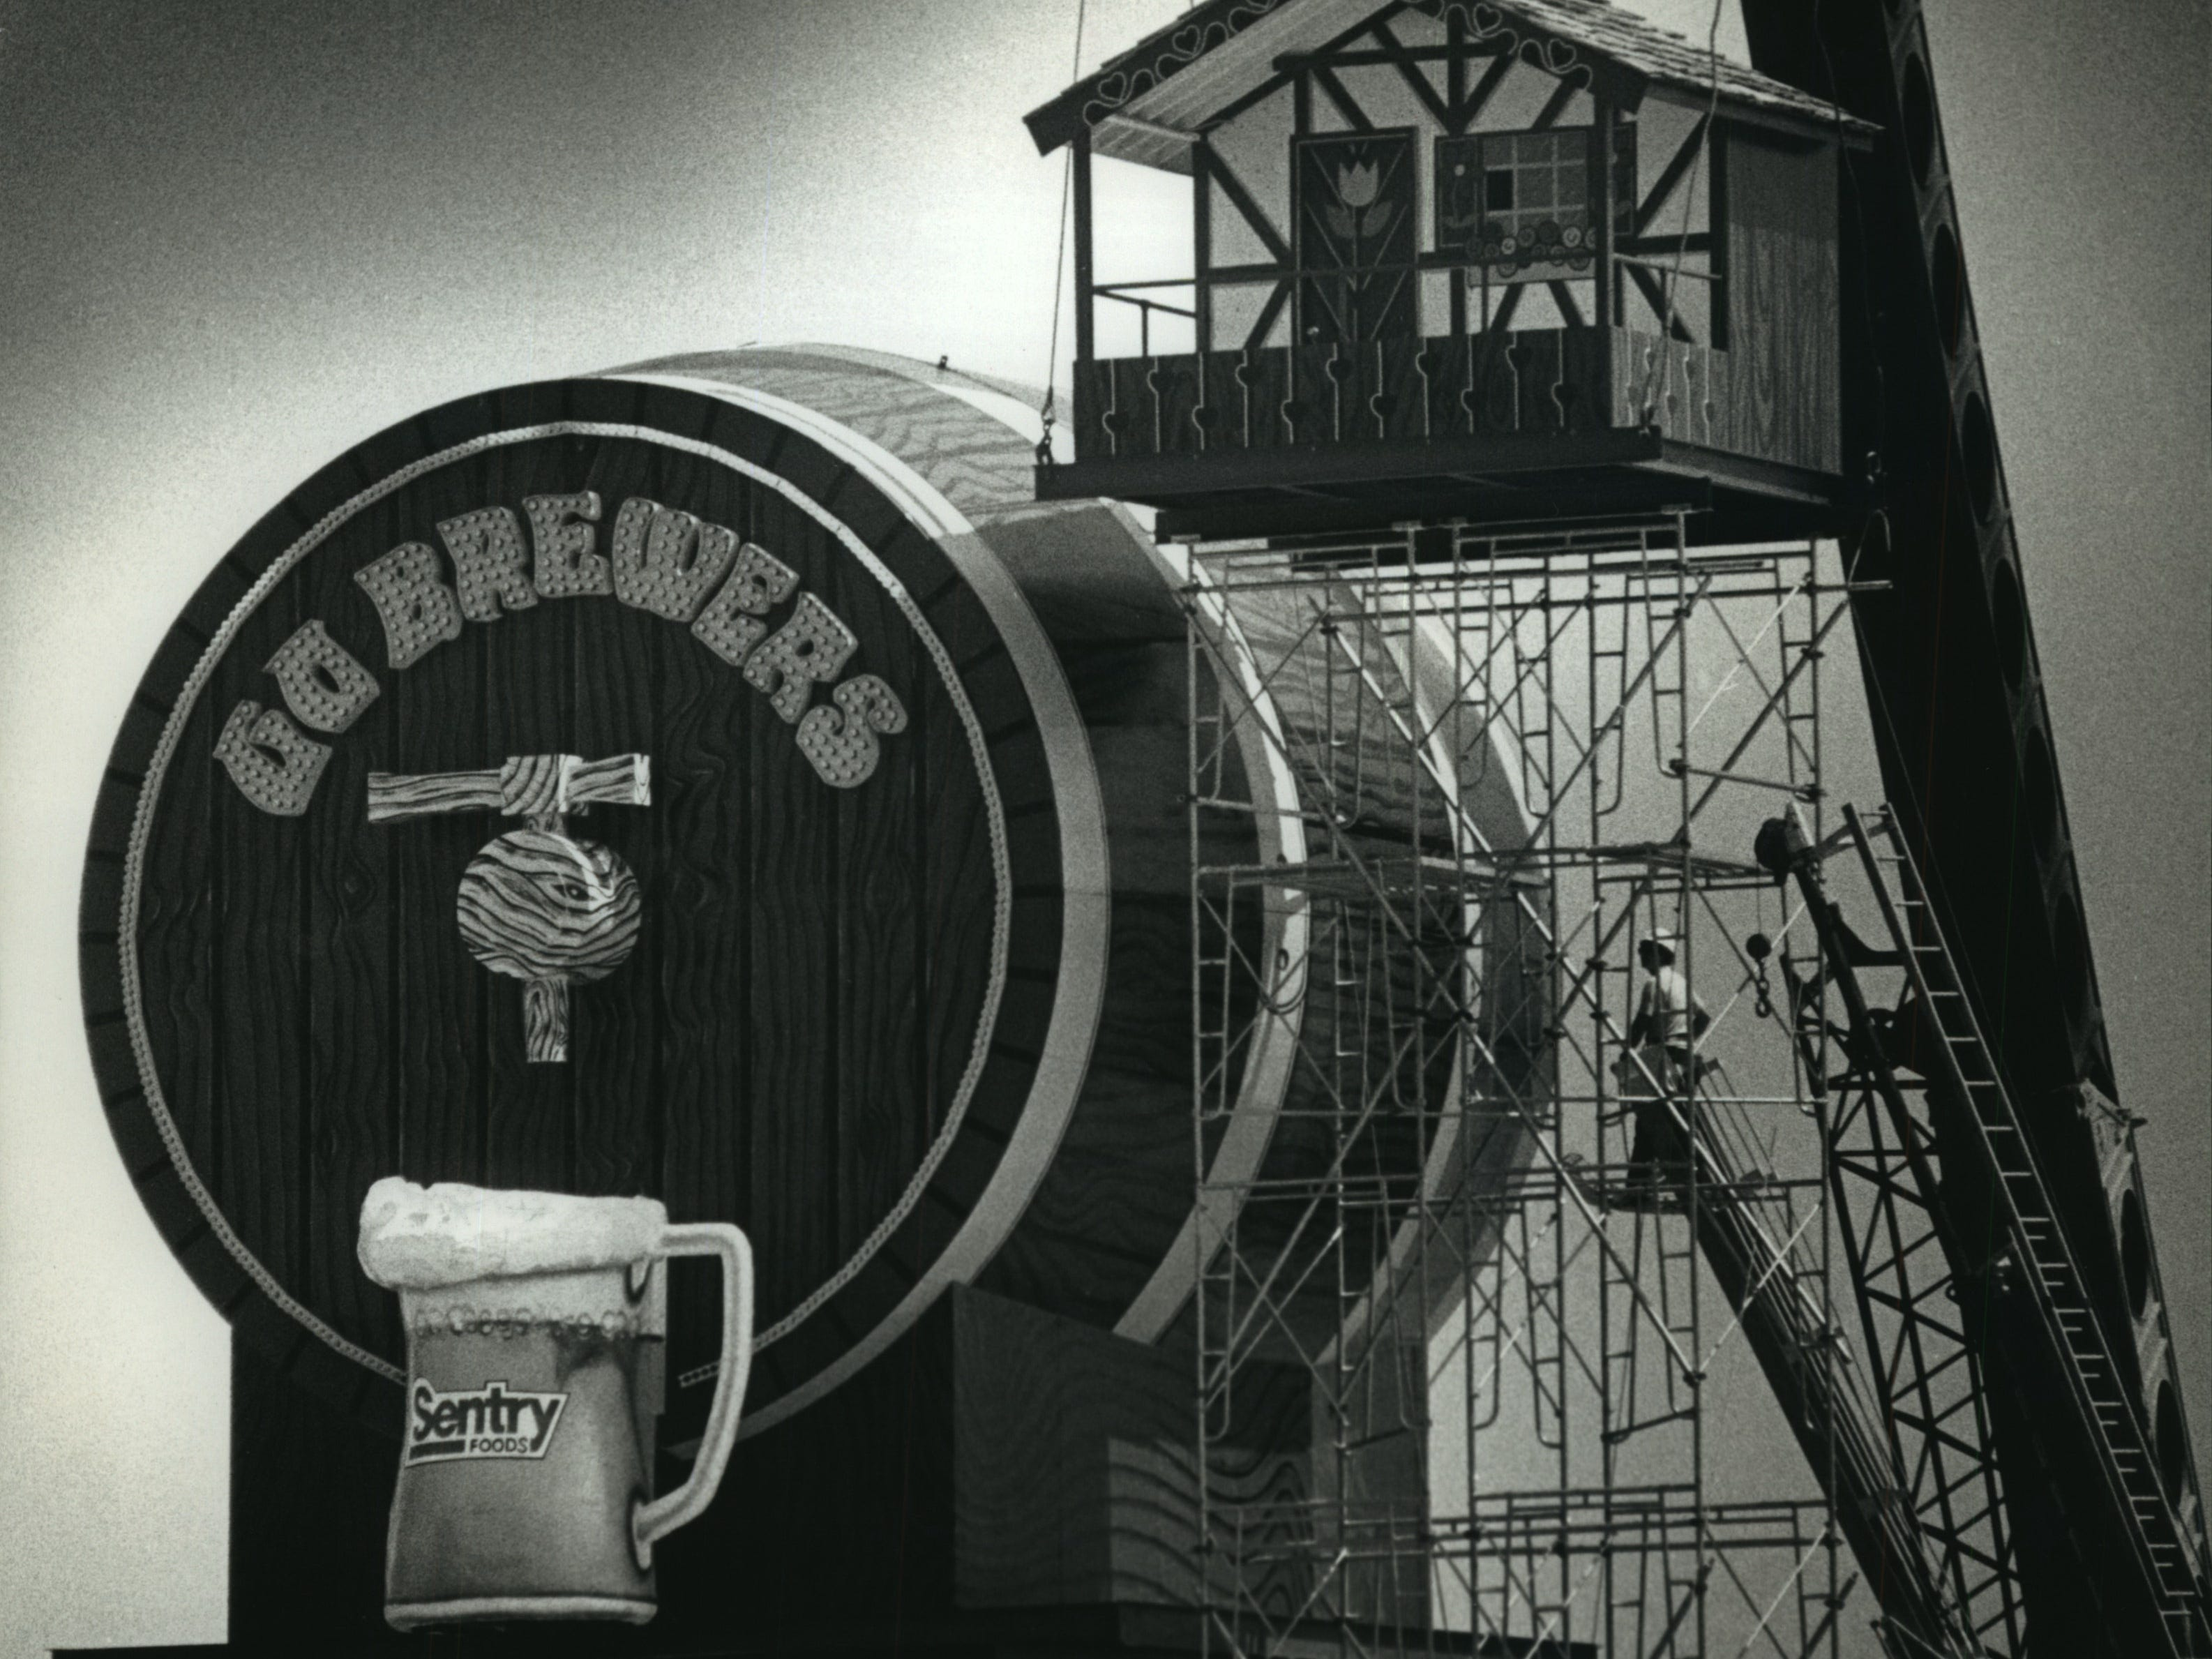 Workers complete the reinstallation of Bernie Brewer's chalet and accompanying beer keg and mug, at Milwaukee County Stadium on May 26, 1993. A crew from Derse Inc. of Milwaukee placed the chalet next to the beer barrel beyond the centerfield bleachers. The chalet, which features the Brewers' mascot descending on a slide from the chalet into the mug when the Brewers hit a home run, first appeared at the stadium in 1973. It was removed in 1984 because the chalet blocked the center-field speaker of the stadium's then-new sound system.